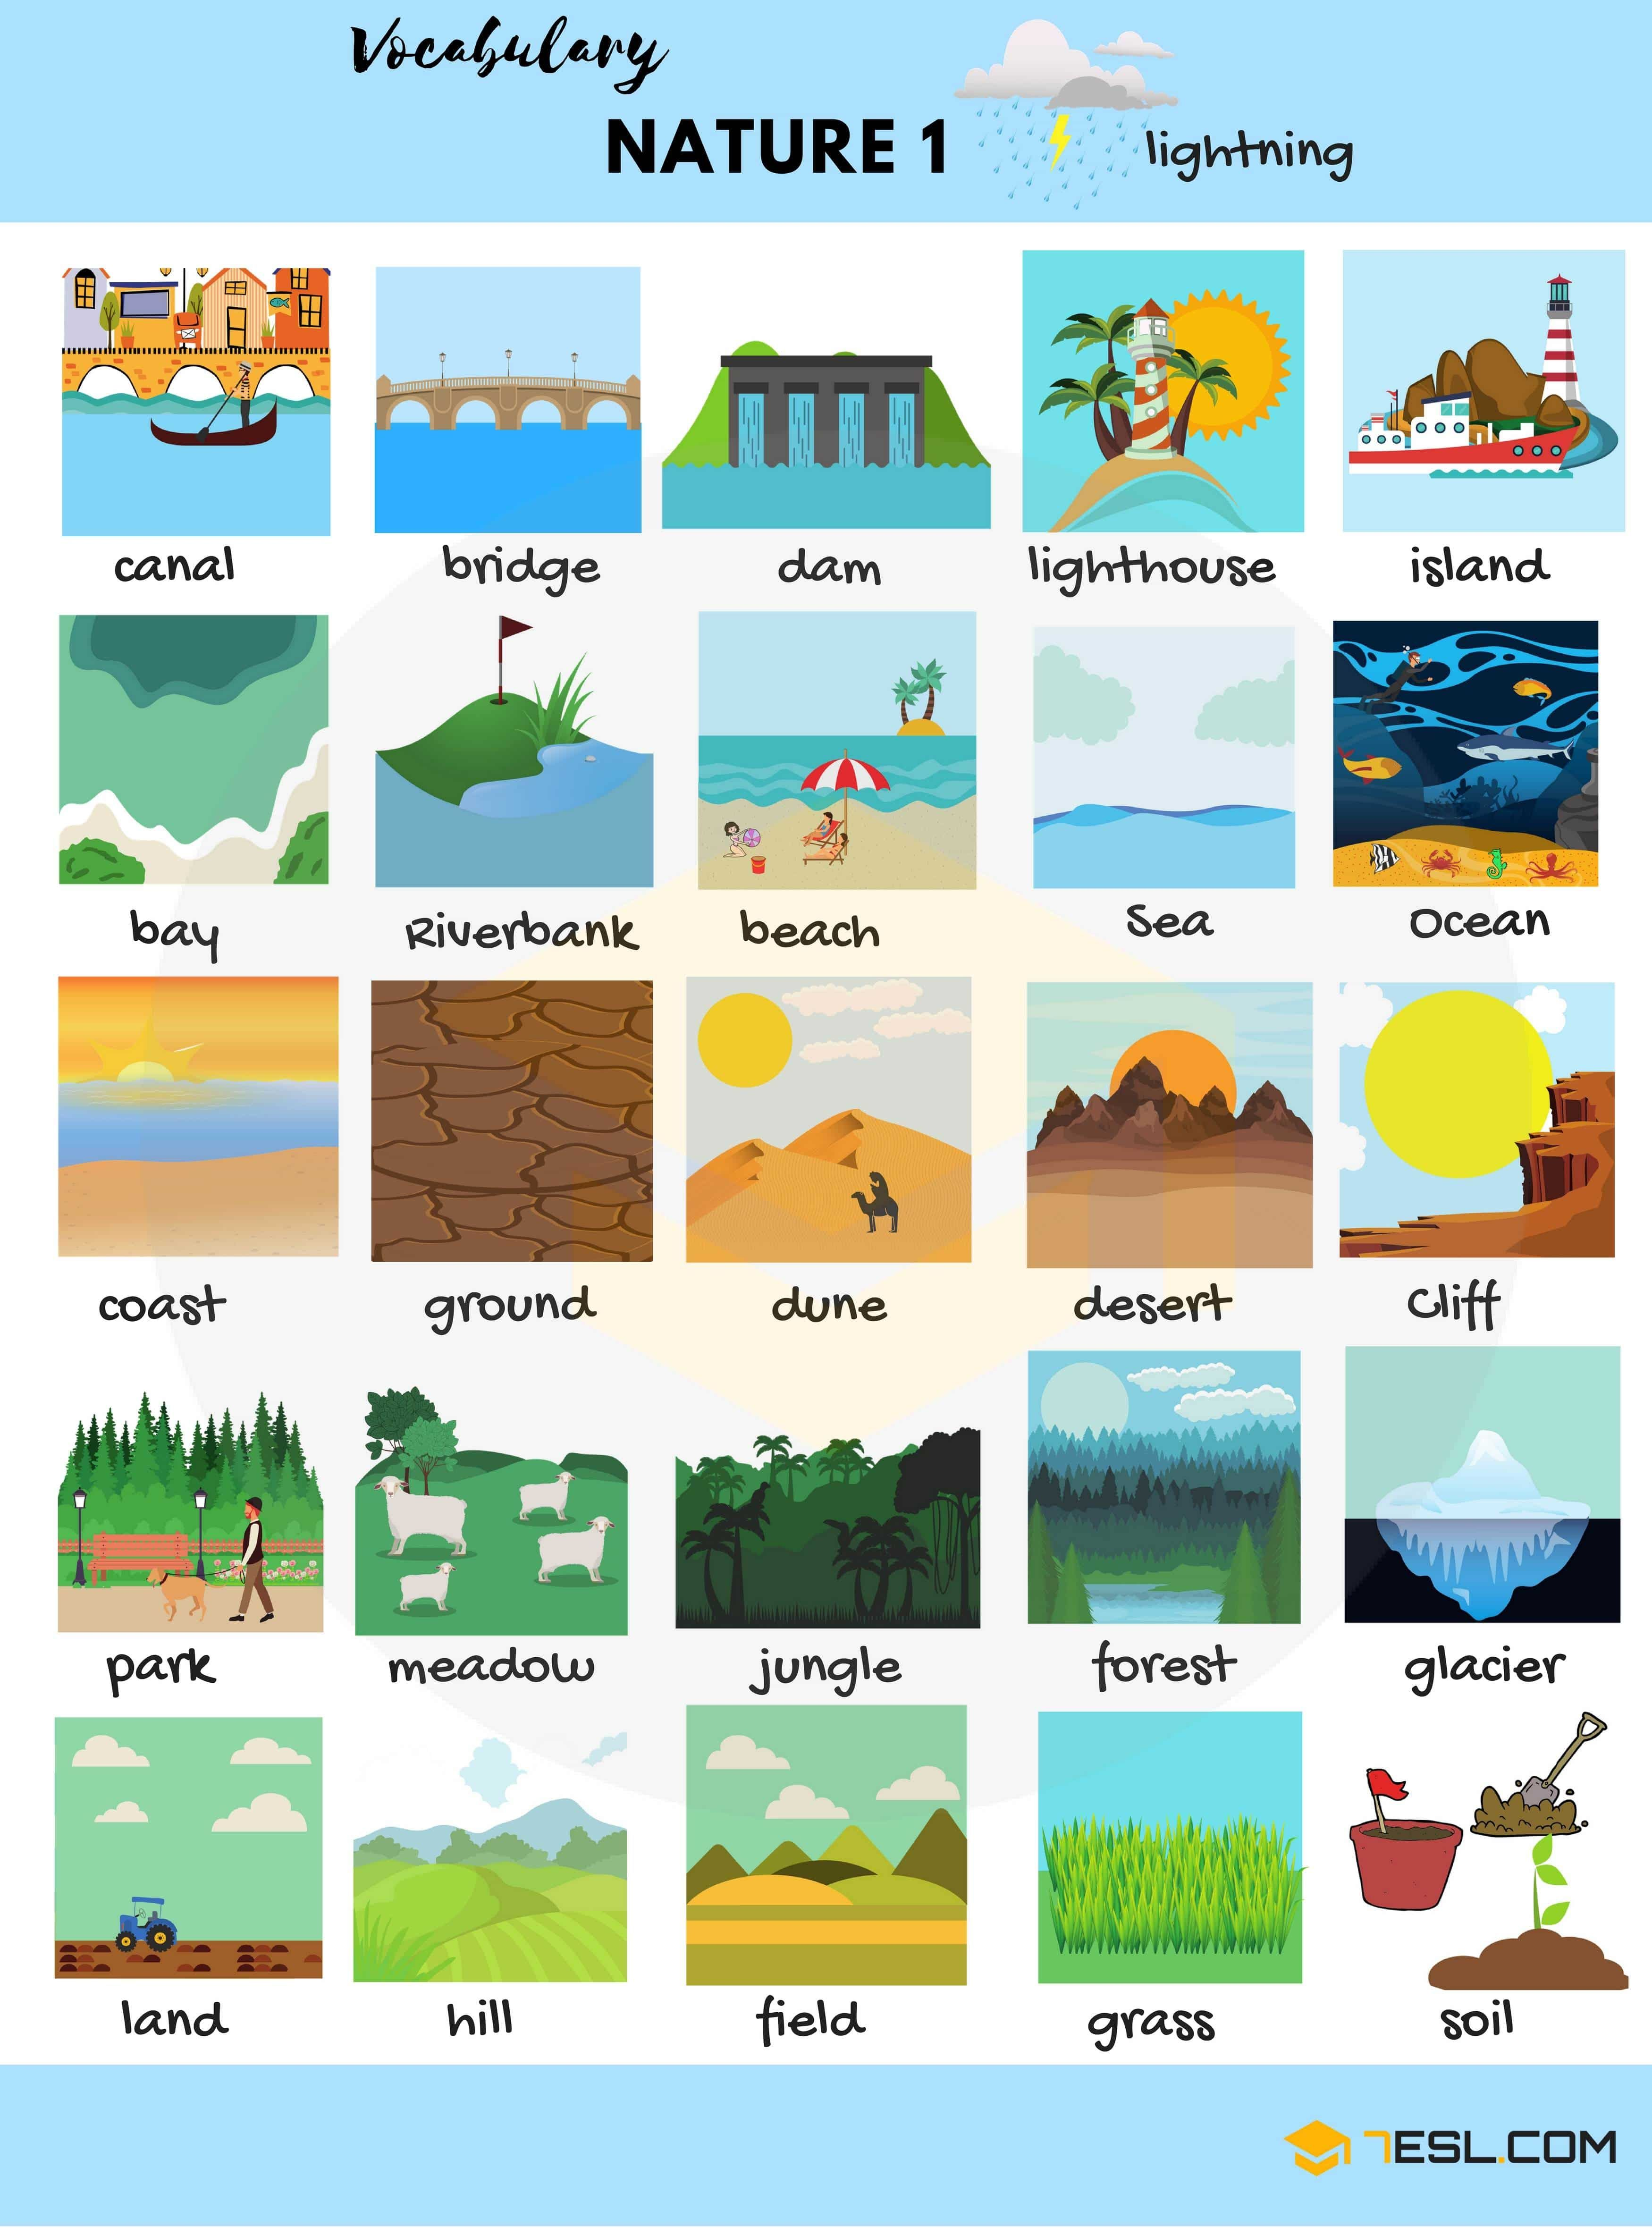 Nature Words Useful Nature Vocabulary In English